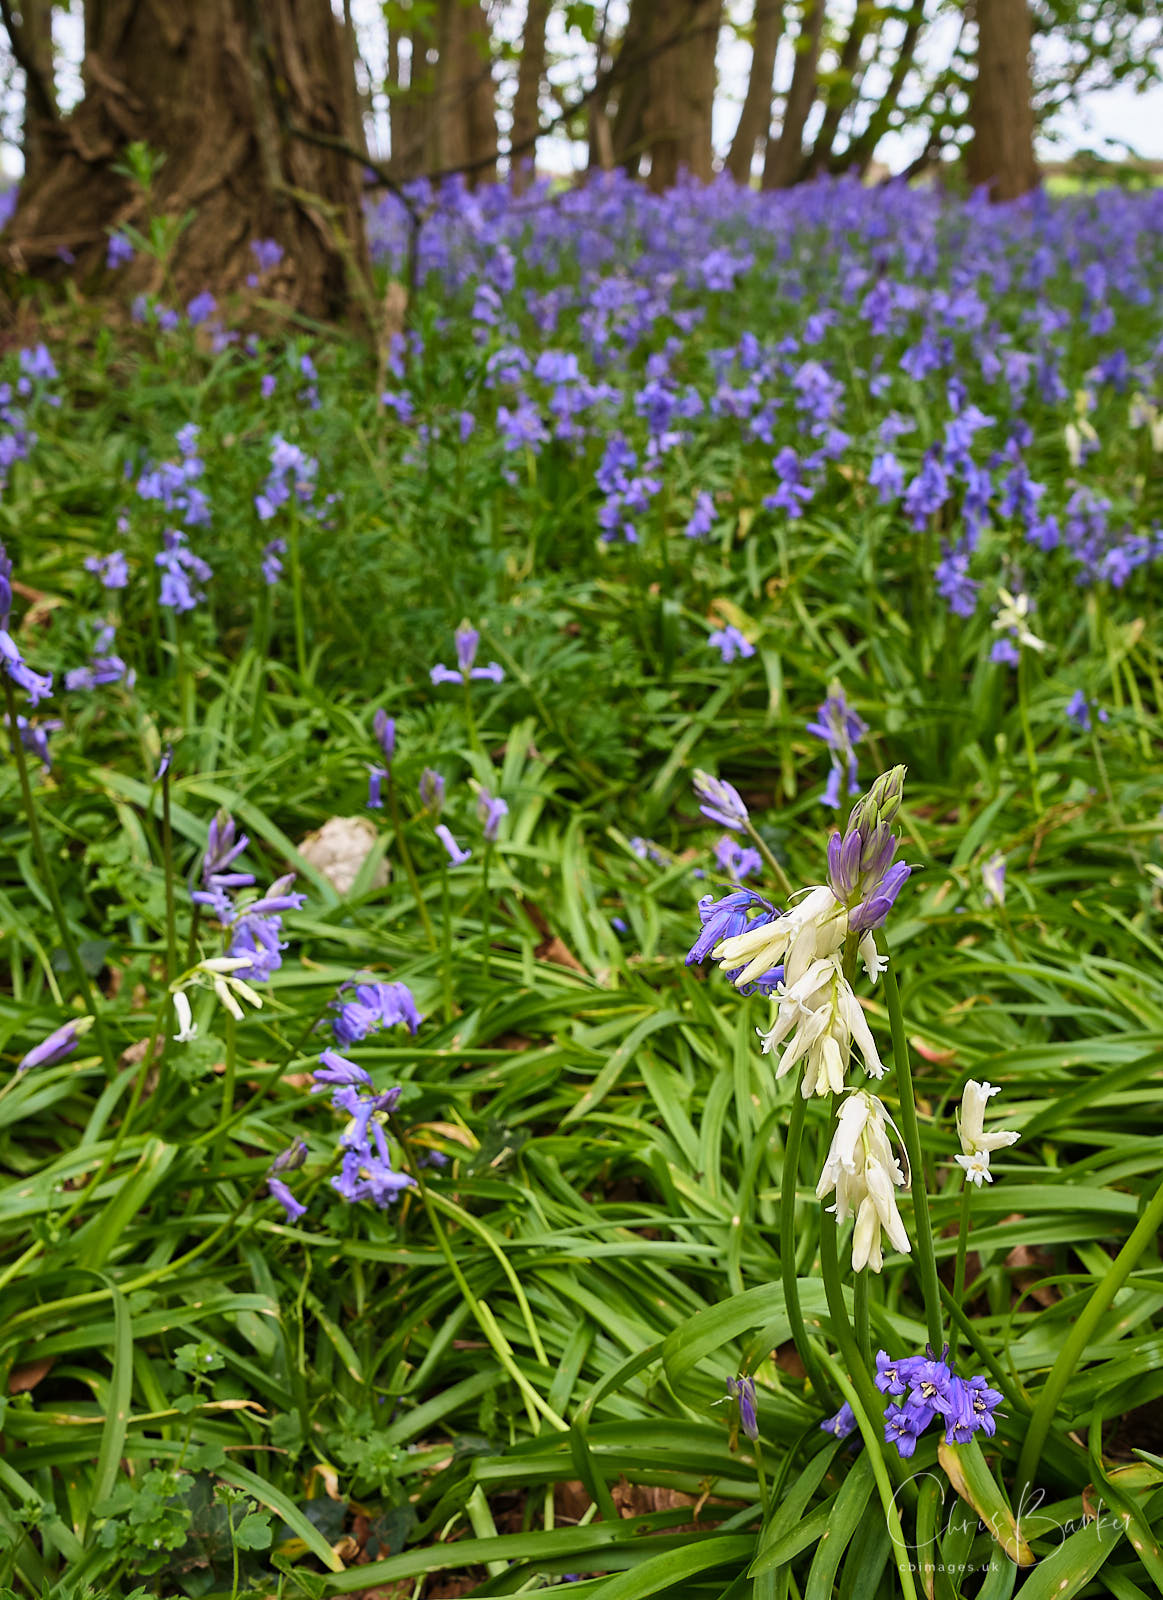 Close-up photo of bluebells